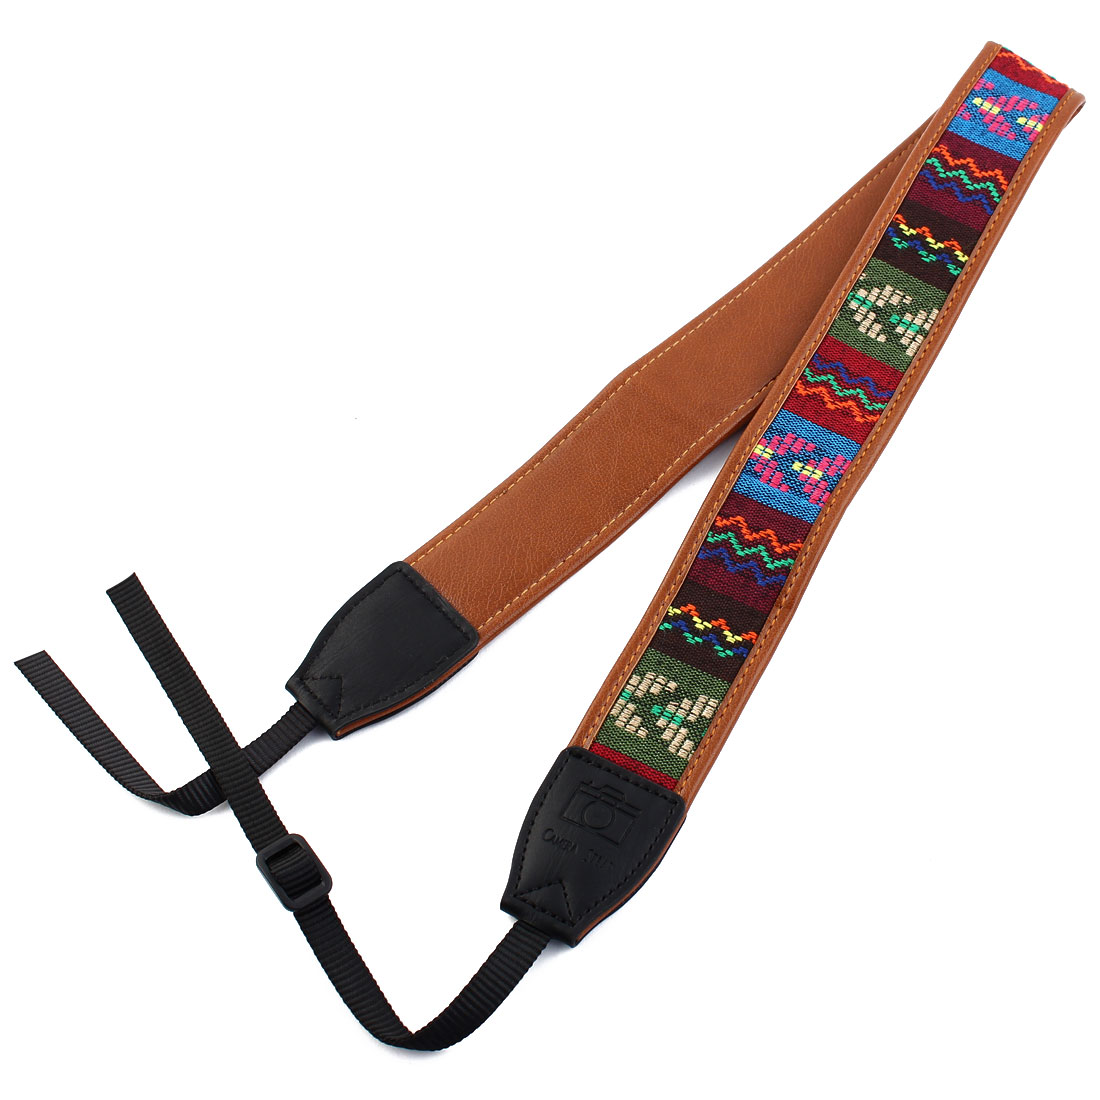 SHETU Authorized Universal Camera Shoulder Neck Strap Multicolor for DSLR SLR